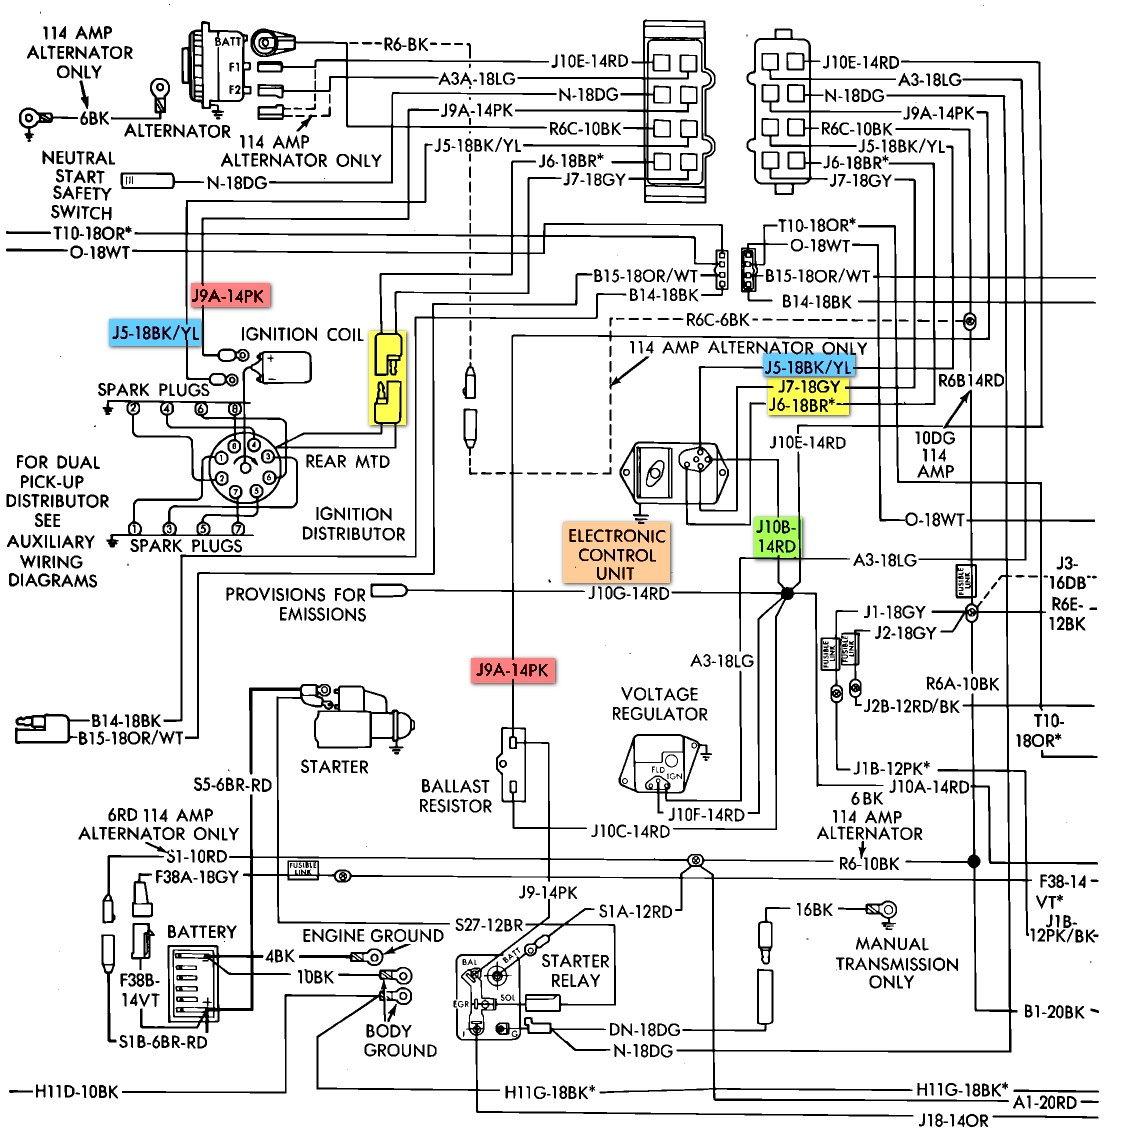 1991 Dodge Truck Wiring Diagram | Wiring Diagram on dodge truck wiring diagram, dodge trailer wiring diagram, dodge caravan wiring diagram,